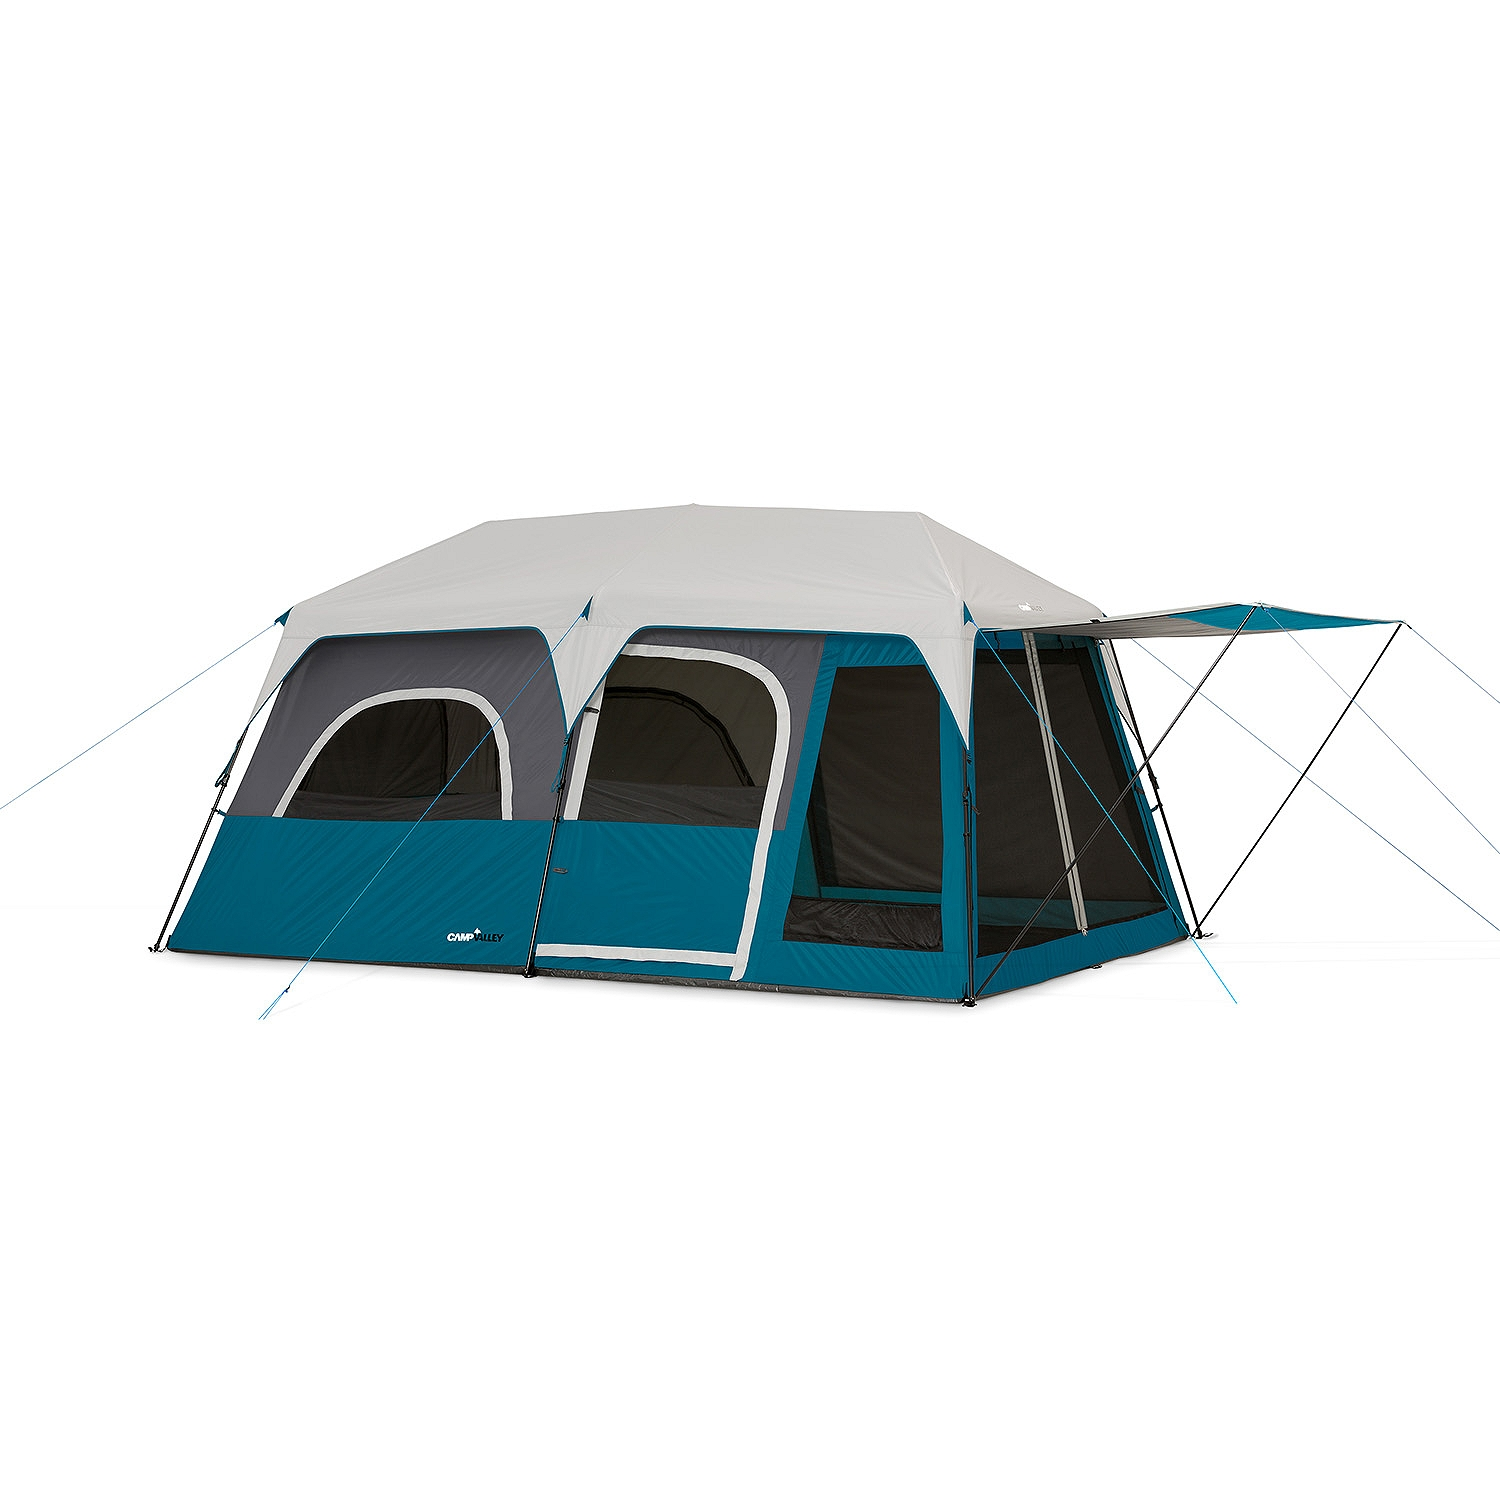 C&valley 10-Person Instant Cabin Tent  sc 1 st  Walmart : 10 person tent walmart - memphite.com